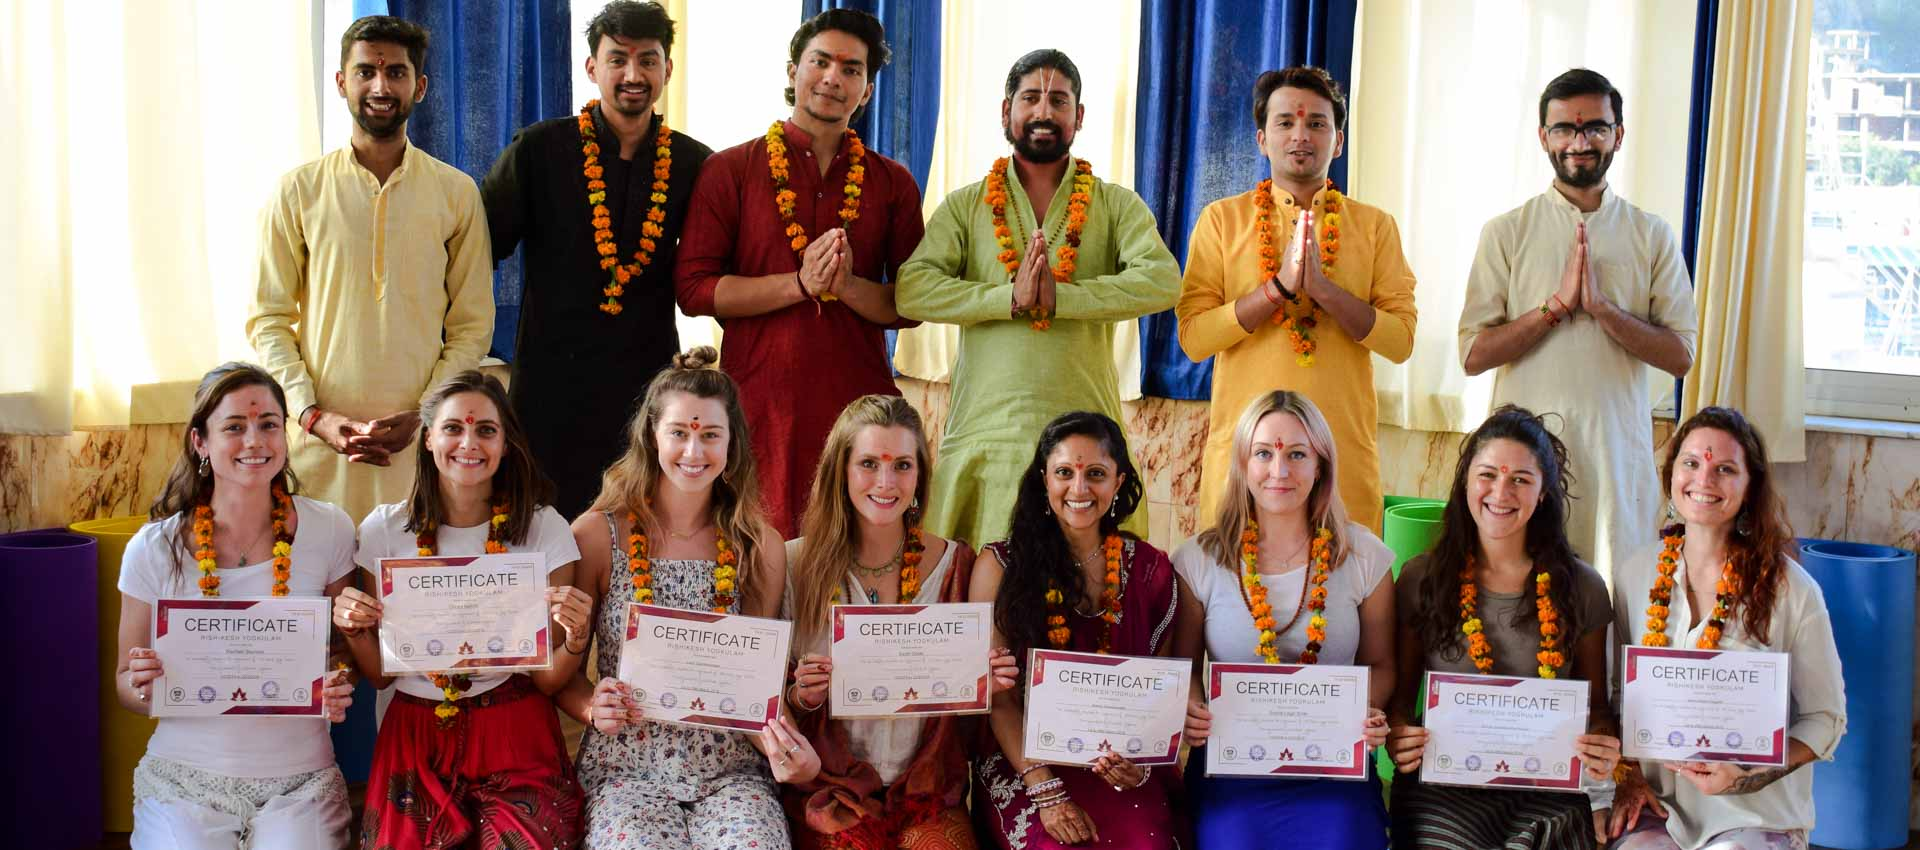 300 Hour Yoga Teacher Training Course in Rishikesh- September 2019, Rishikesh, Uttarakhand, India